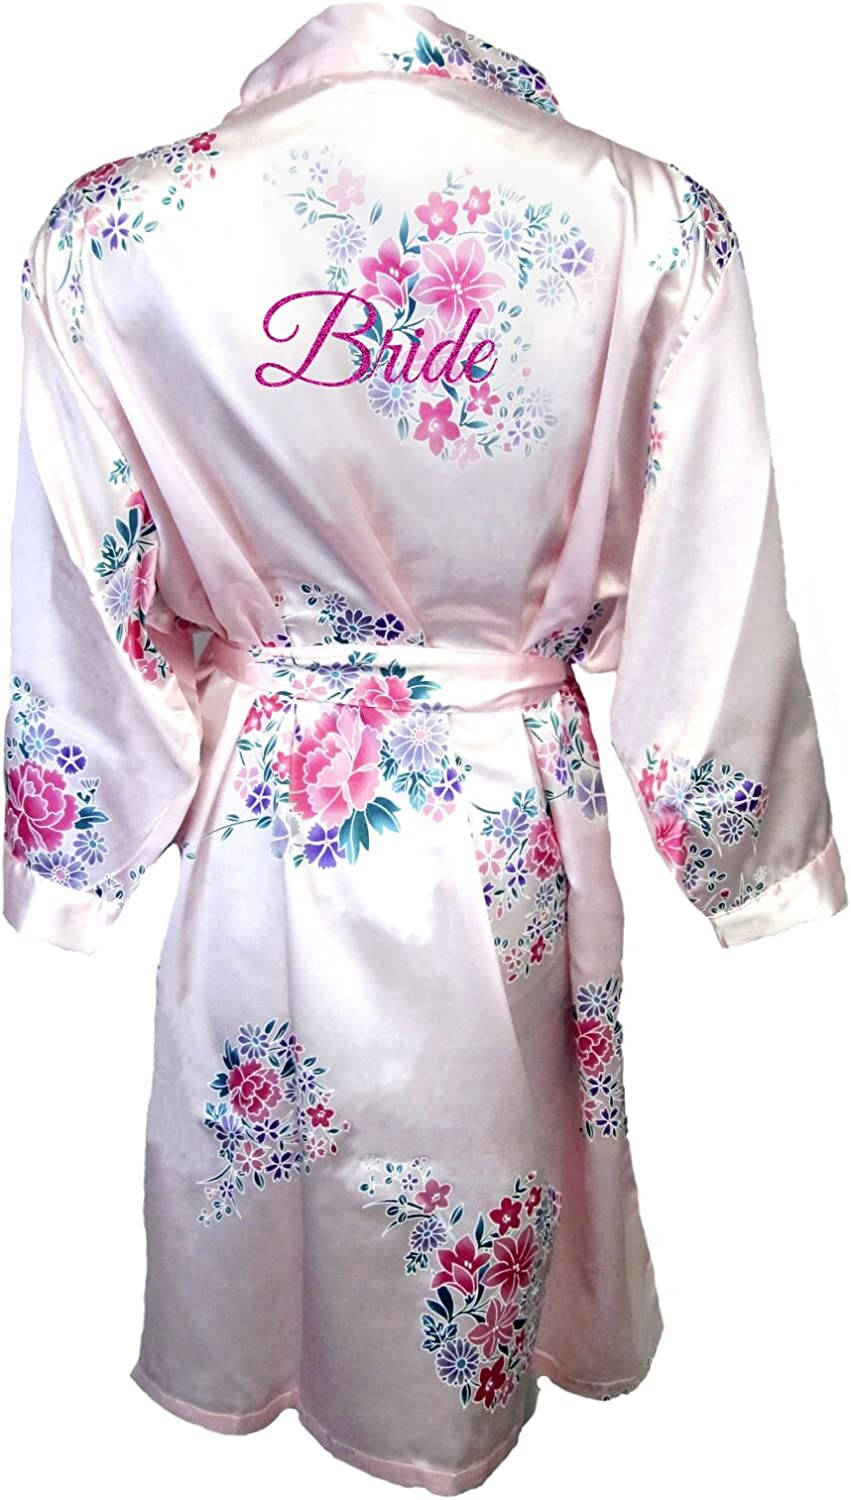 GirlEO Women's Satin Floral Bridal Party Robe with Bride Title